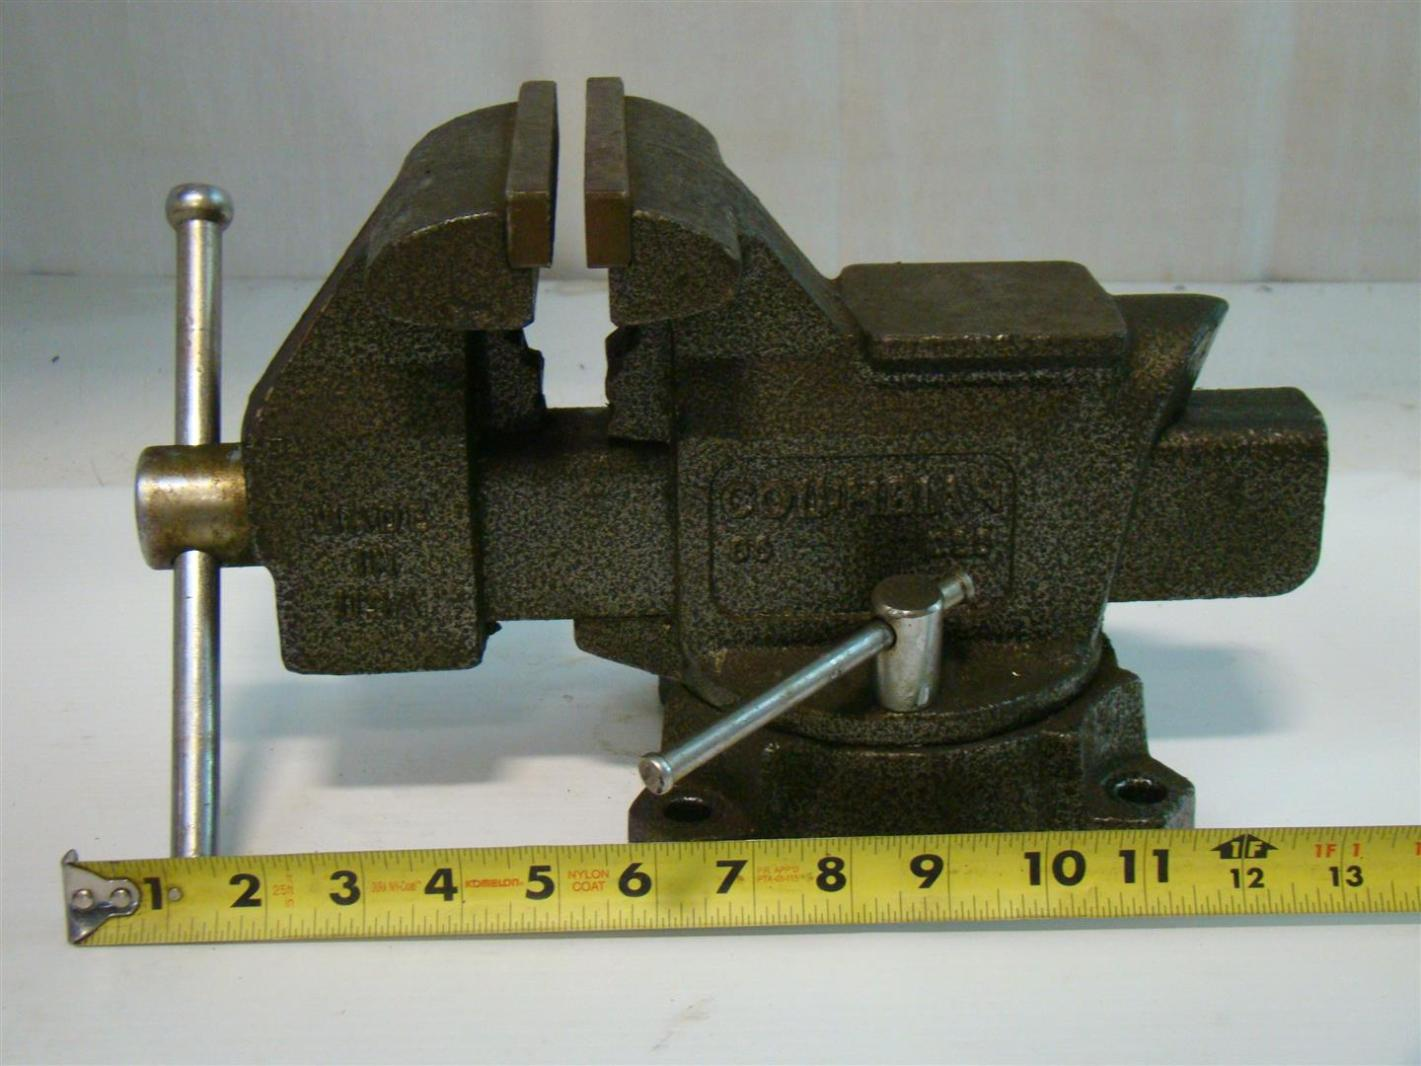 Columbian 5 1 2 bench vise b6 d66 made in usa 6 inch bench vise